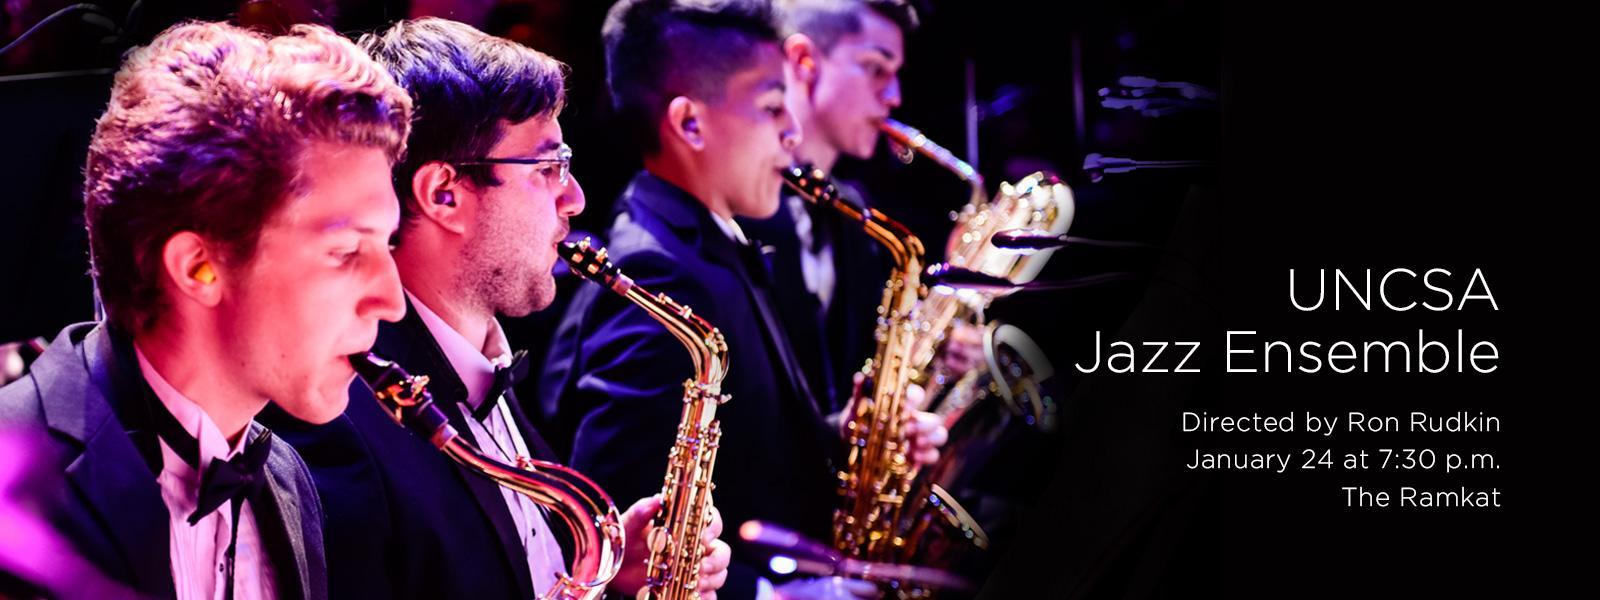 Our award-winning Jazz Ensemble performs a program of varied Big Band jazz styles in downtown Winston-Salem. >> BUY TICKETS